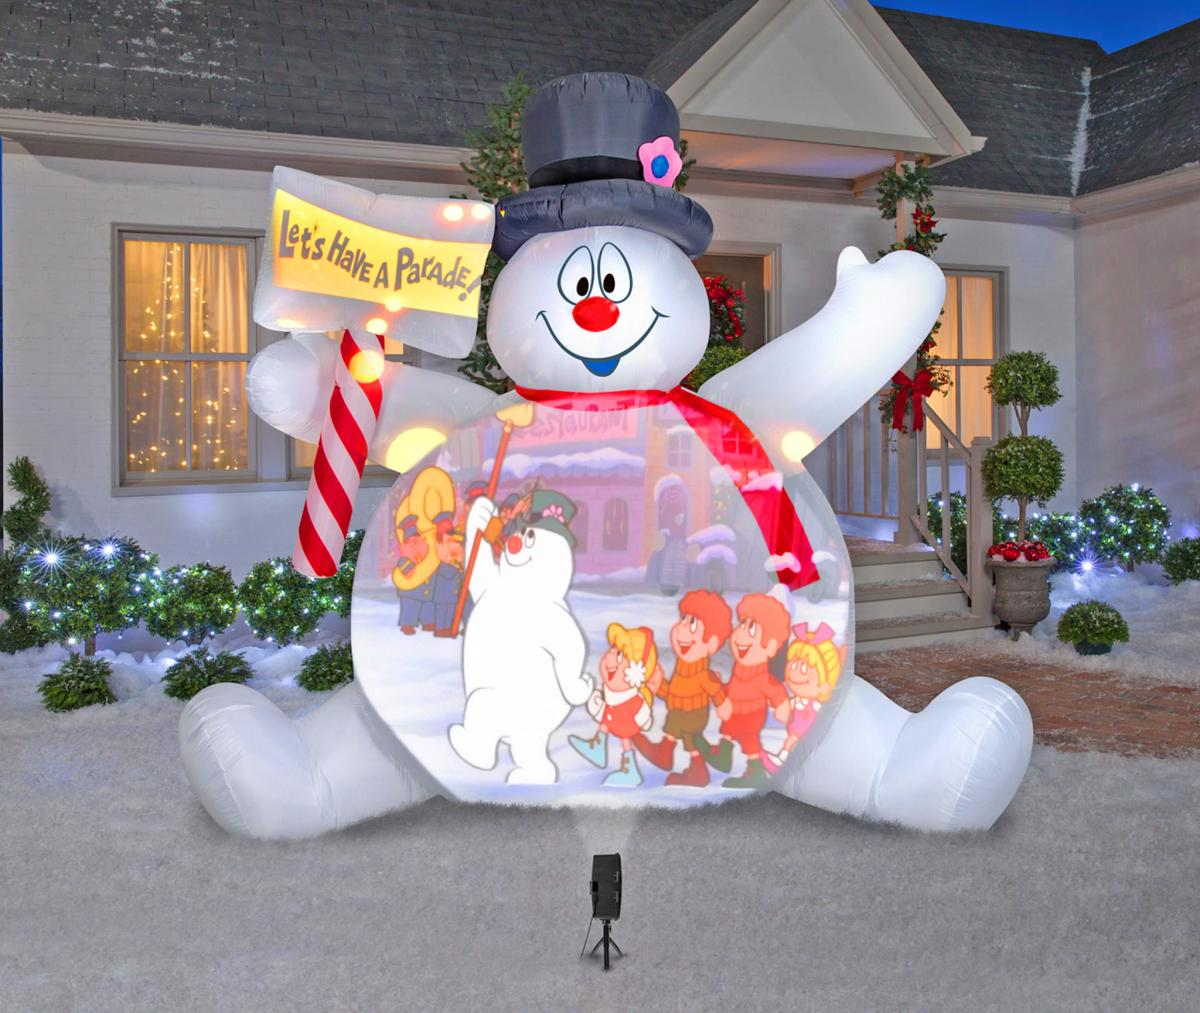 Giant Inflatable Frosty The Snowman Plays Movies On His Belly - Frosty movie projection screen